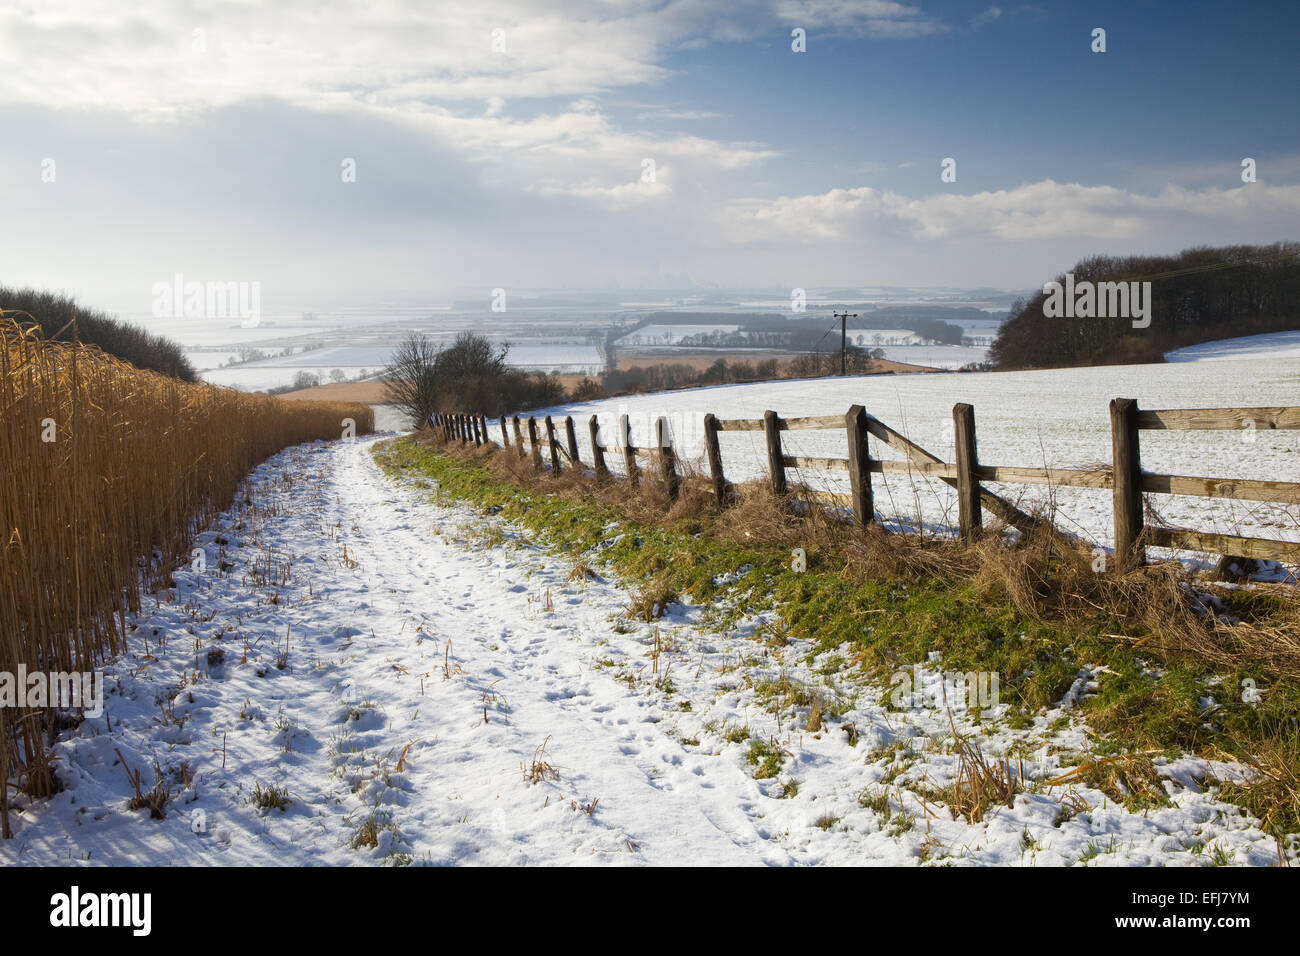 The Ancholme Valley, North Lincolnshire, UK. 3rd February 2015. - Stock Image